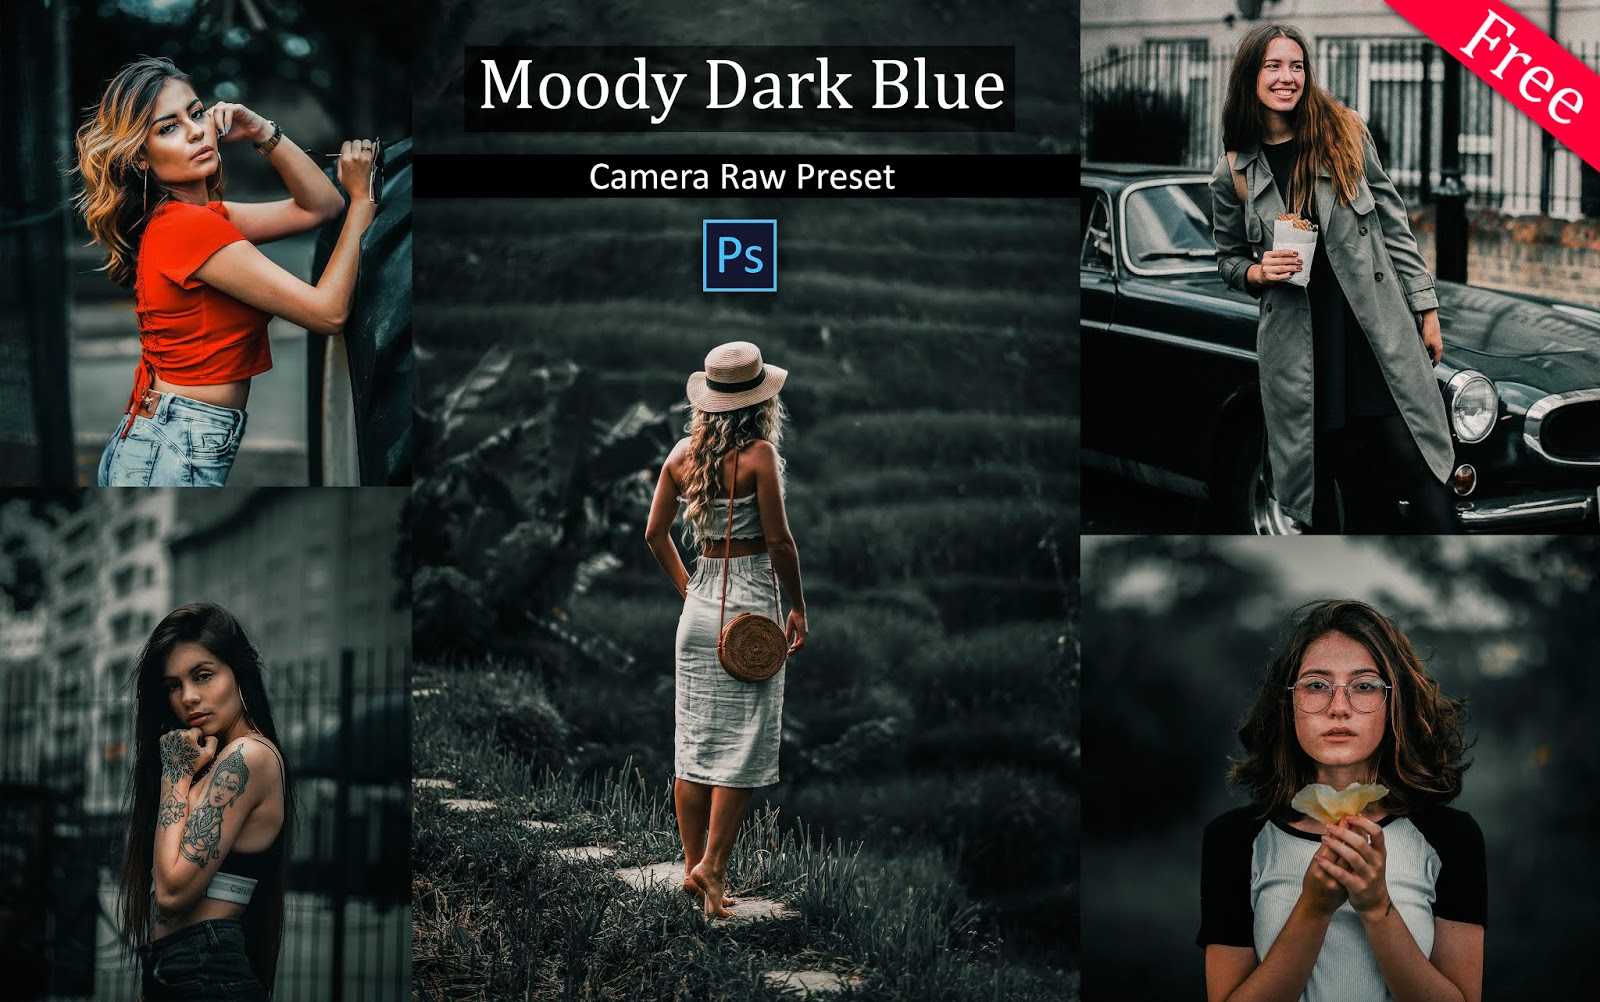 Download Moody Dark Blue Camera Raw Presets for Free | How to Edit Dark Blue Tones in Photoshop